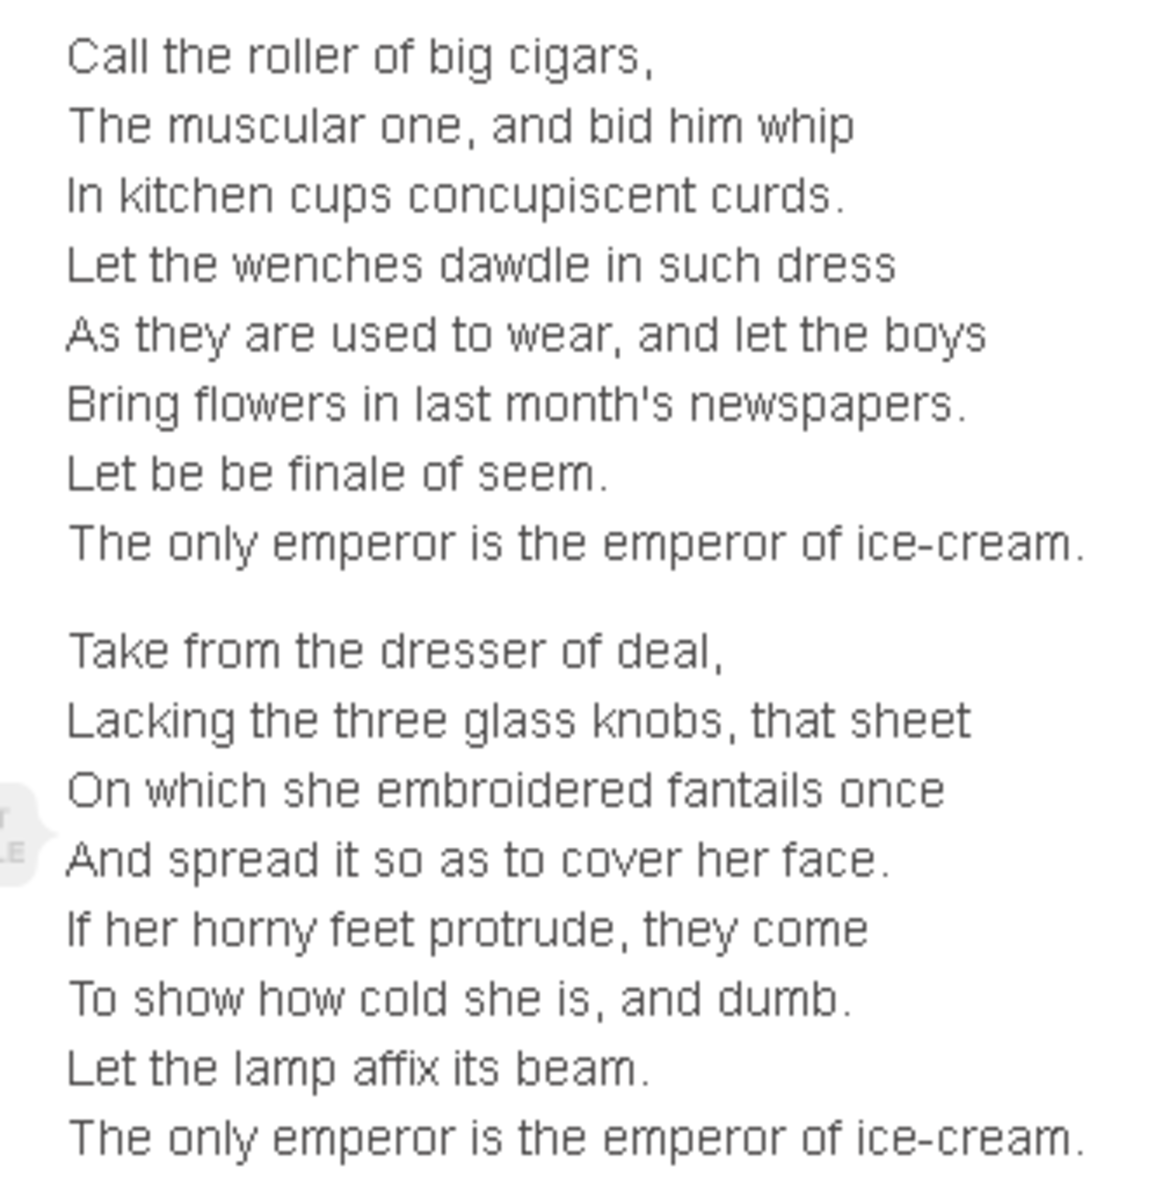 analysis-of-poem-the-emperor-of-ice-cream-by-wallace-stevens